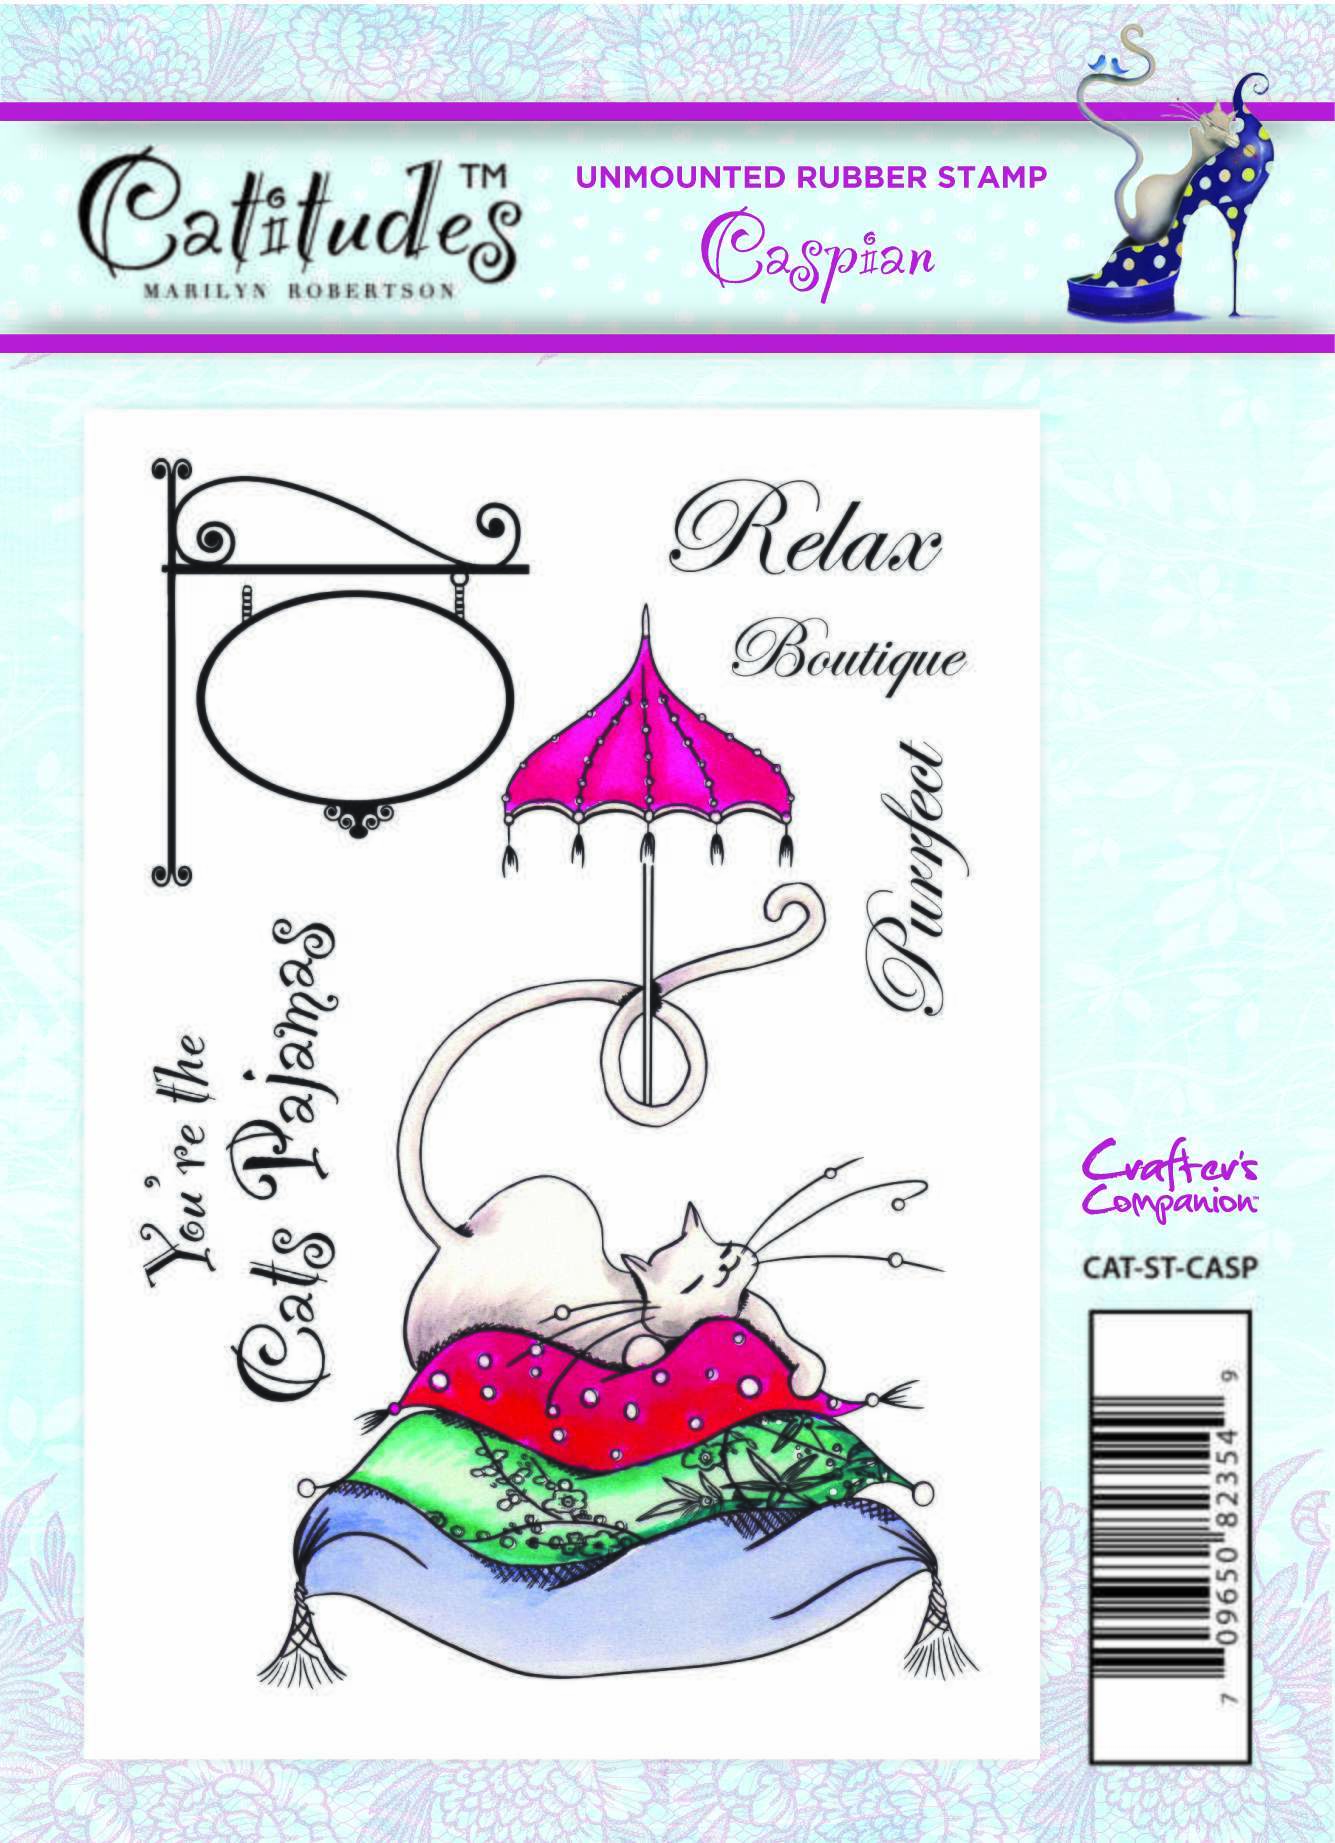 Catitudes Rubber Stamps